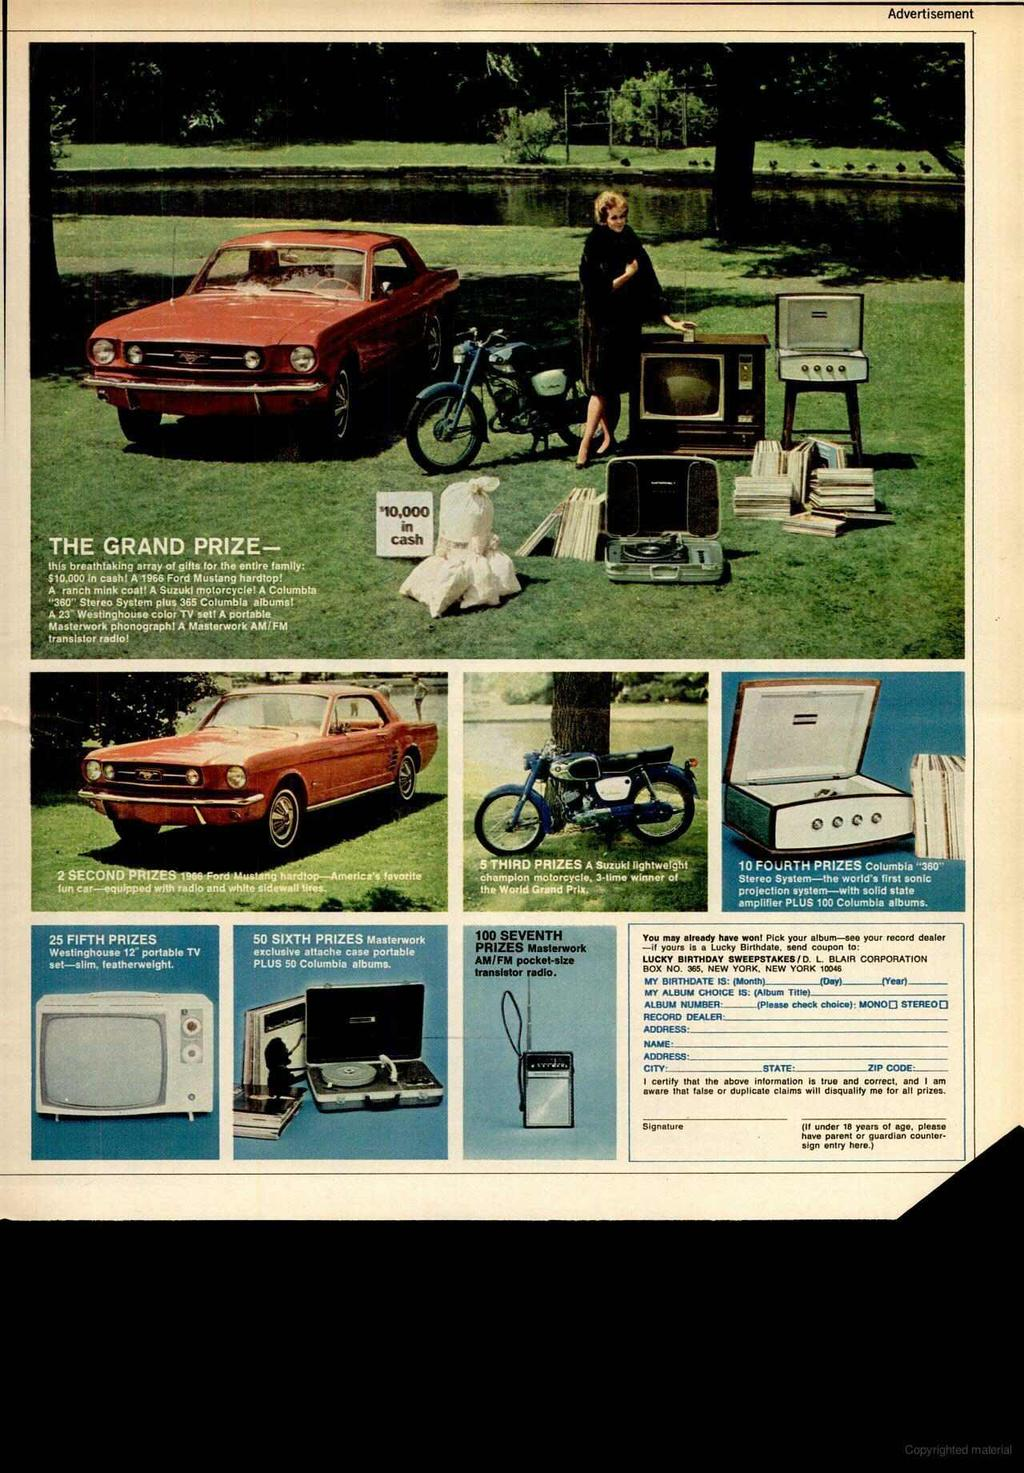 Advertisement THE GRAND PRIZE this breathtaking array of gifts for the entire family: 510.000 in cash! A 1966 Ford Mustang hardtop! A ranch mink coat! A Suzuki motorcycle!